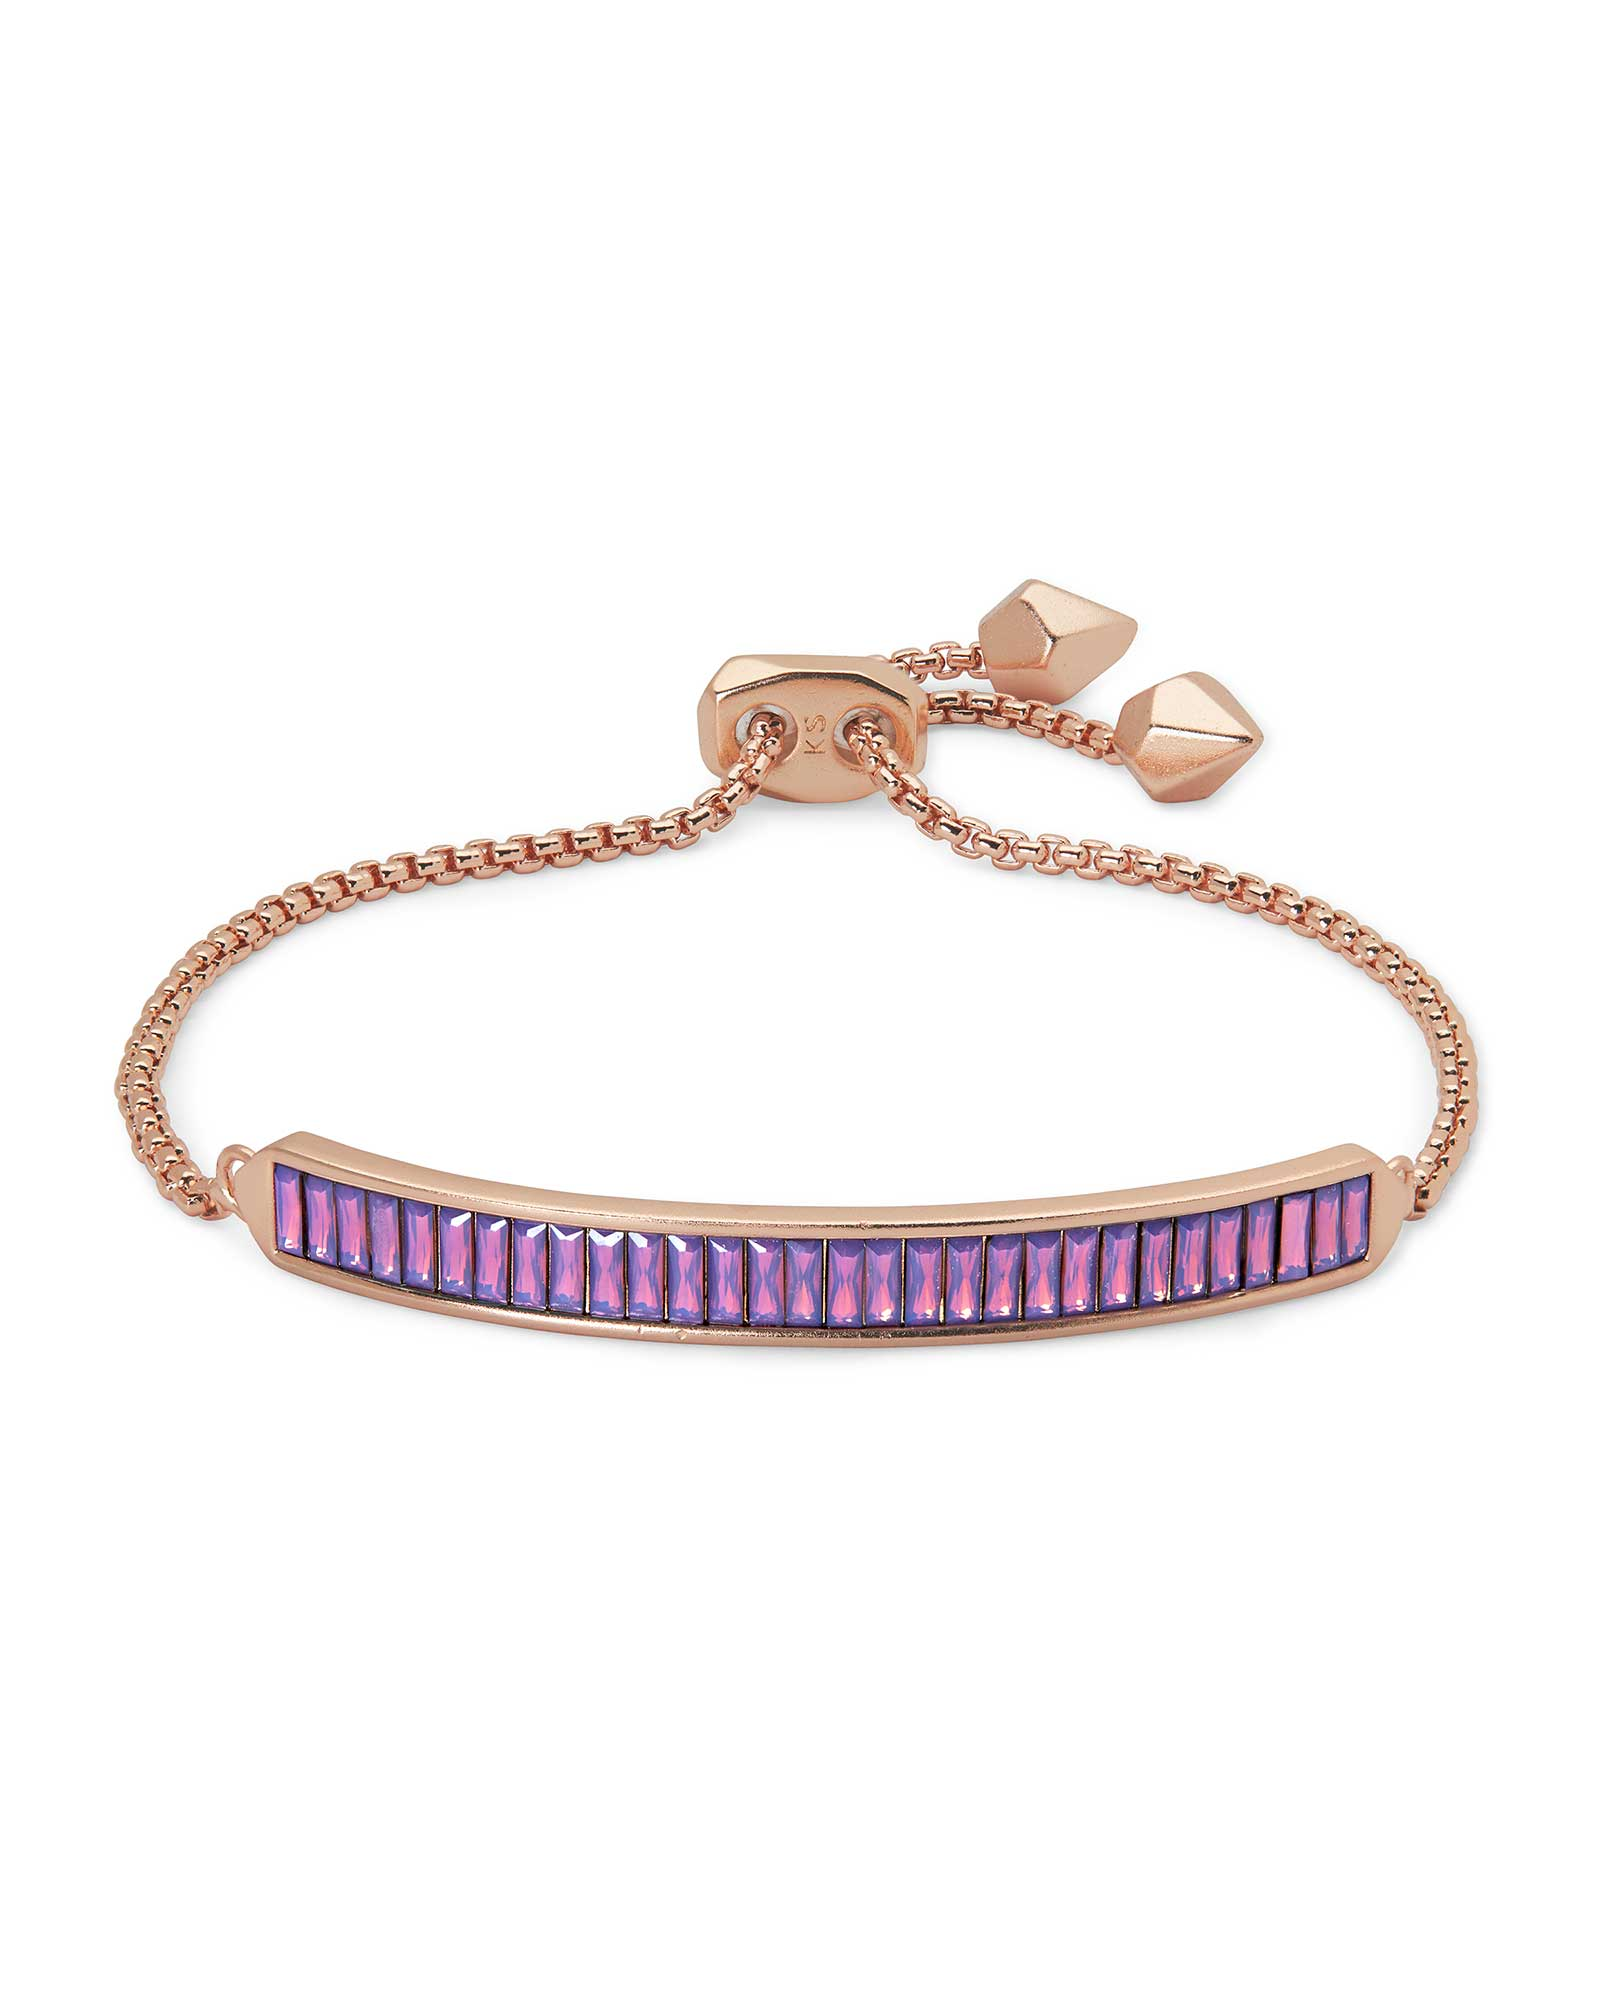 Jack Adjustable Rose Gold Chain Bracelet in Raspberry Crystal